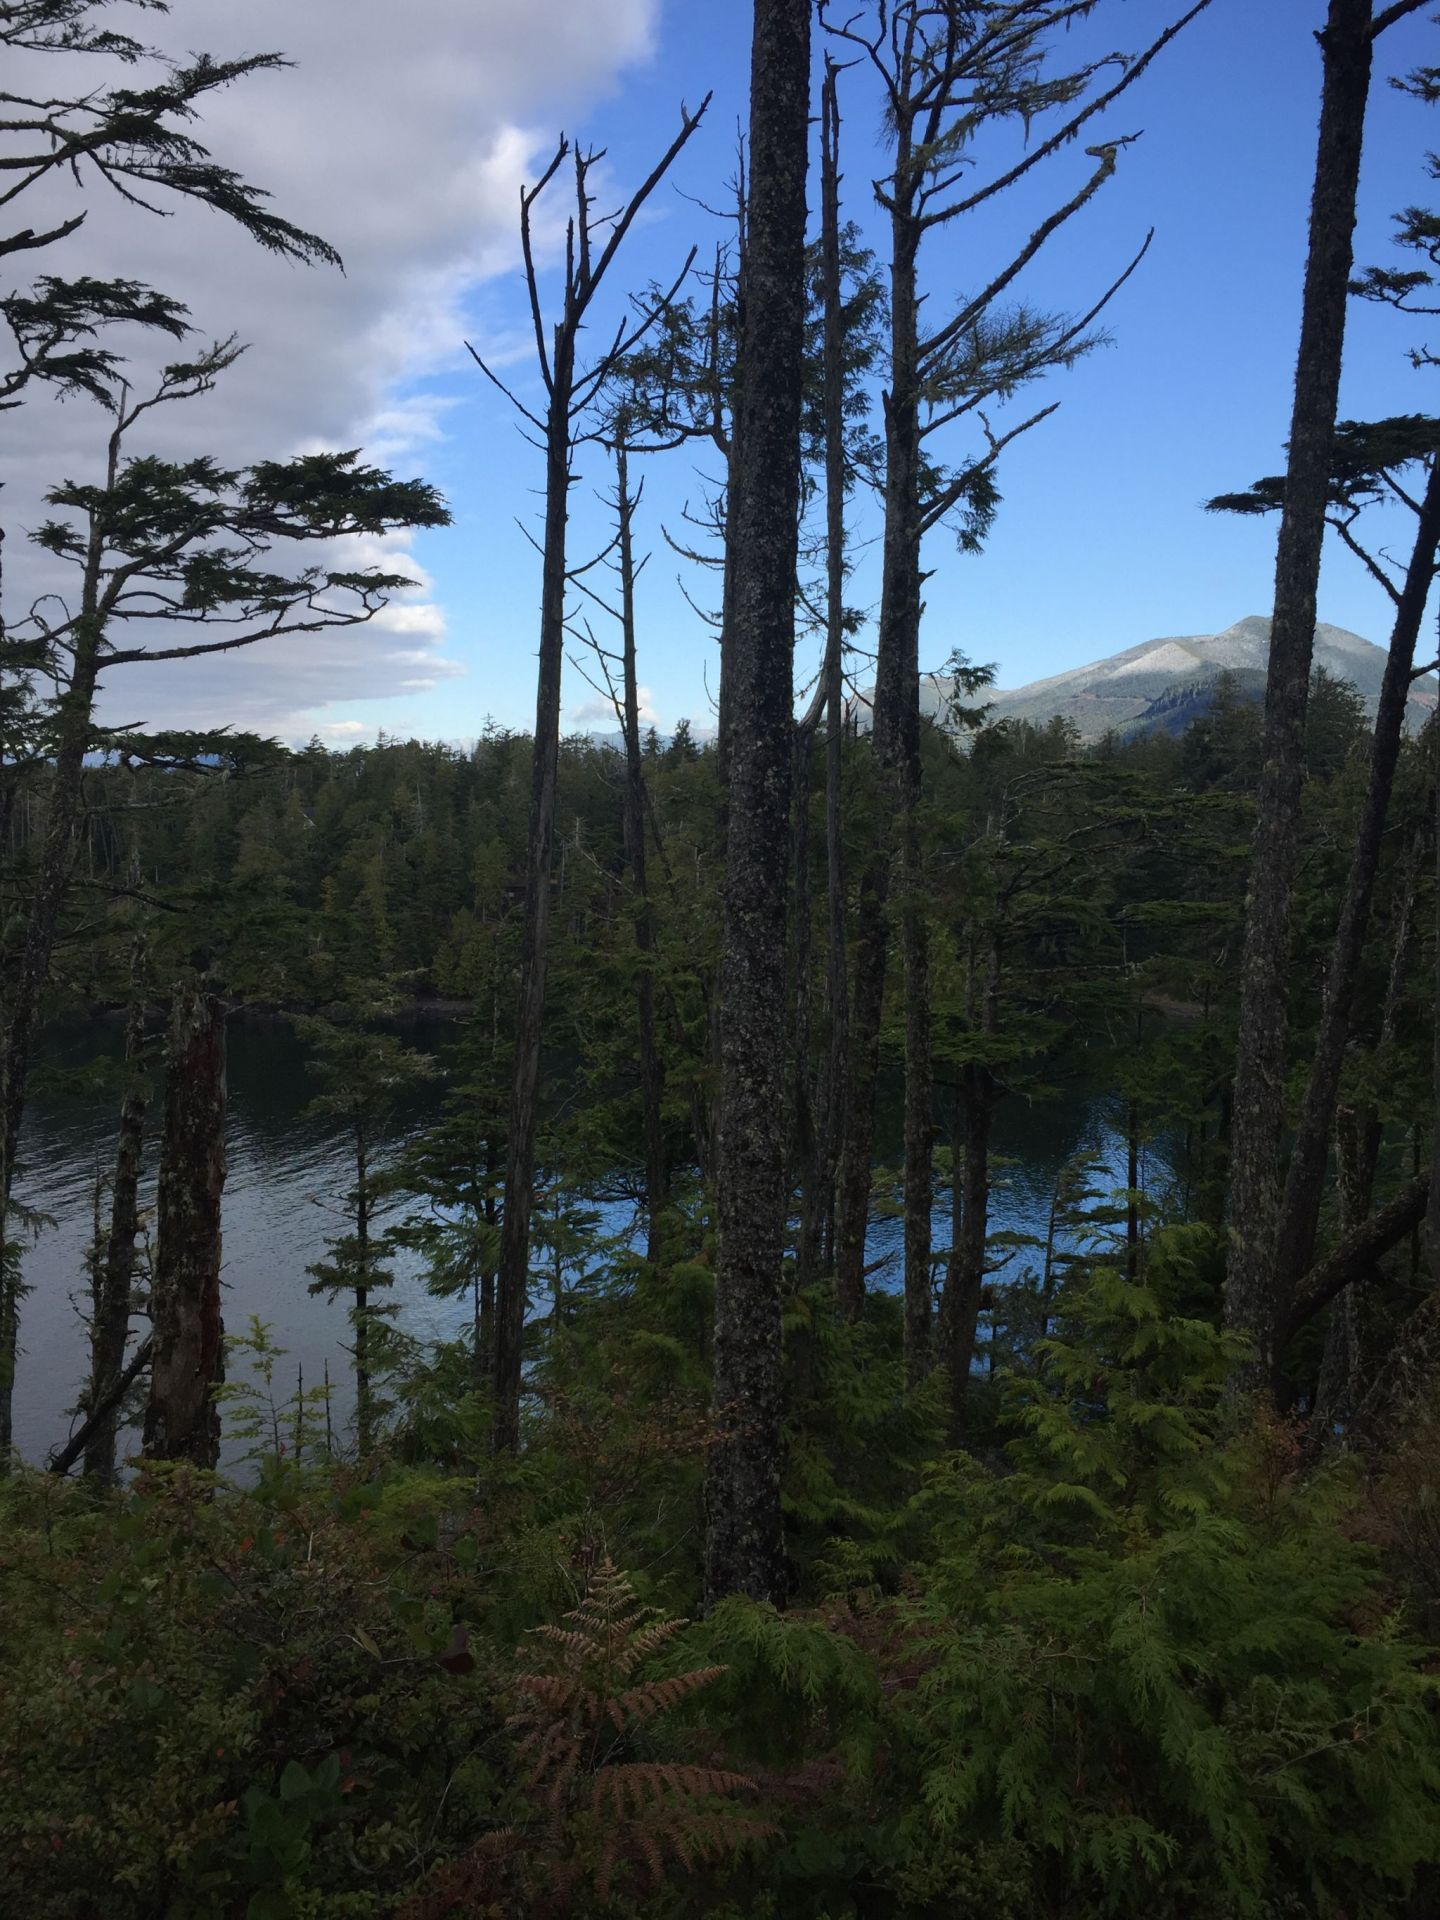 Views to the mountains and ocean near Ucluelet